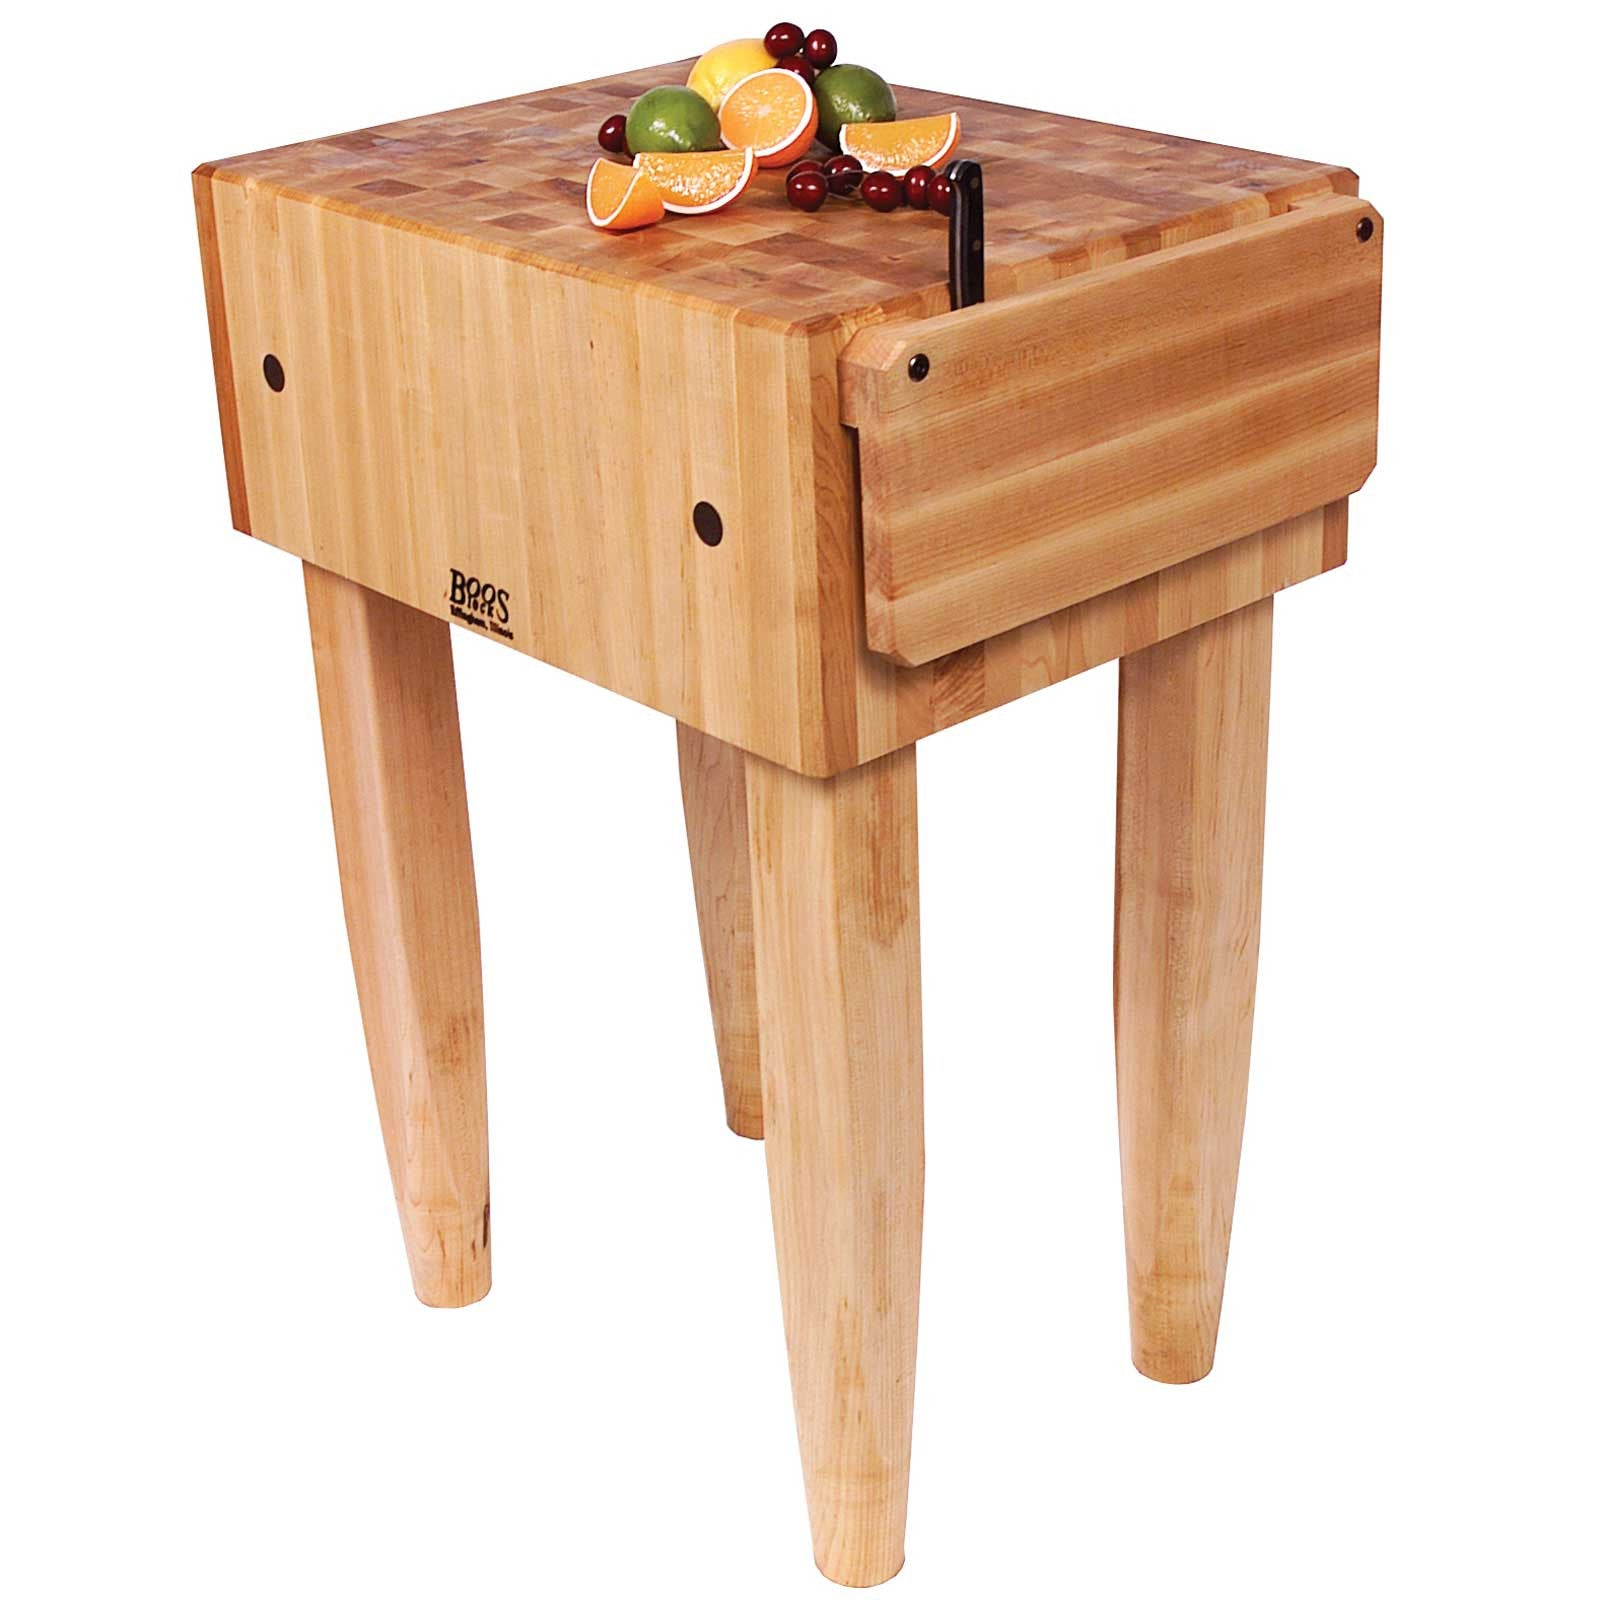 "John Boos 30"" x 30"" x 10"" Maple Top PCA Butcher Block"